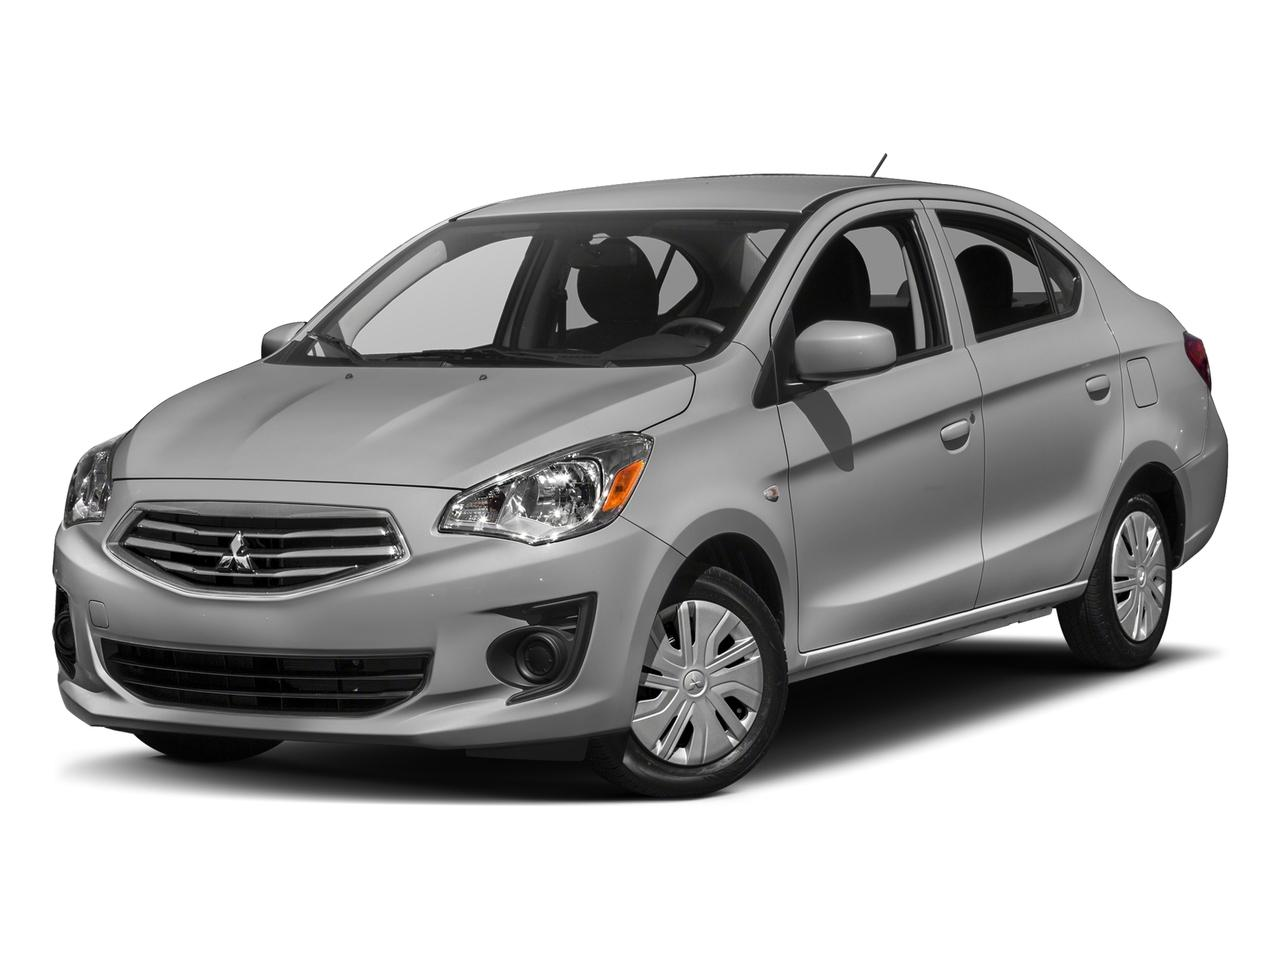 2017 Mitsubishi Mirage G4 Vehicle Photo in Killeen, TX 76541